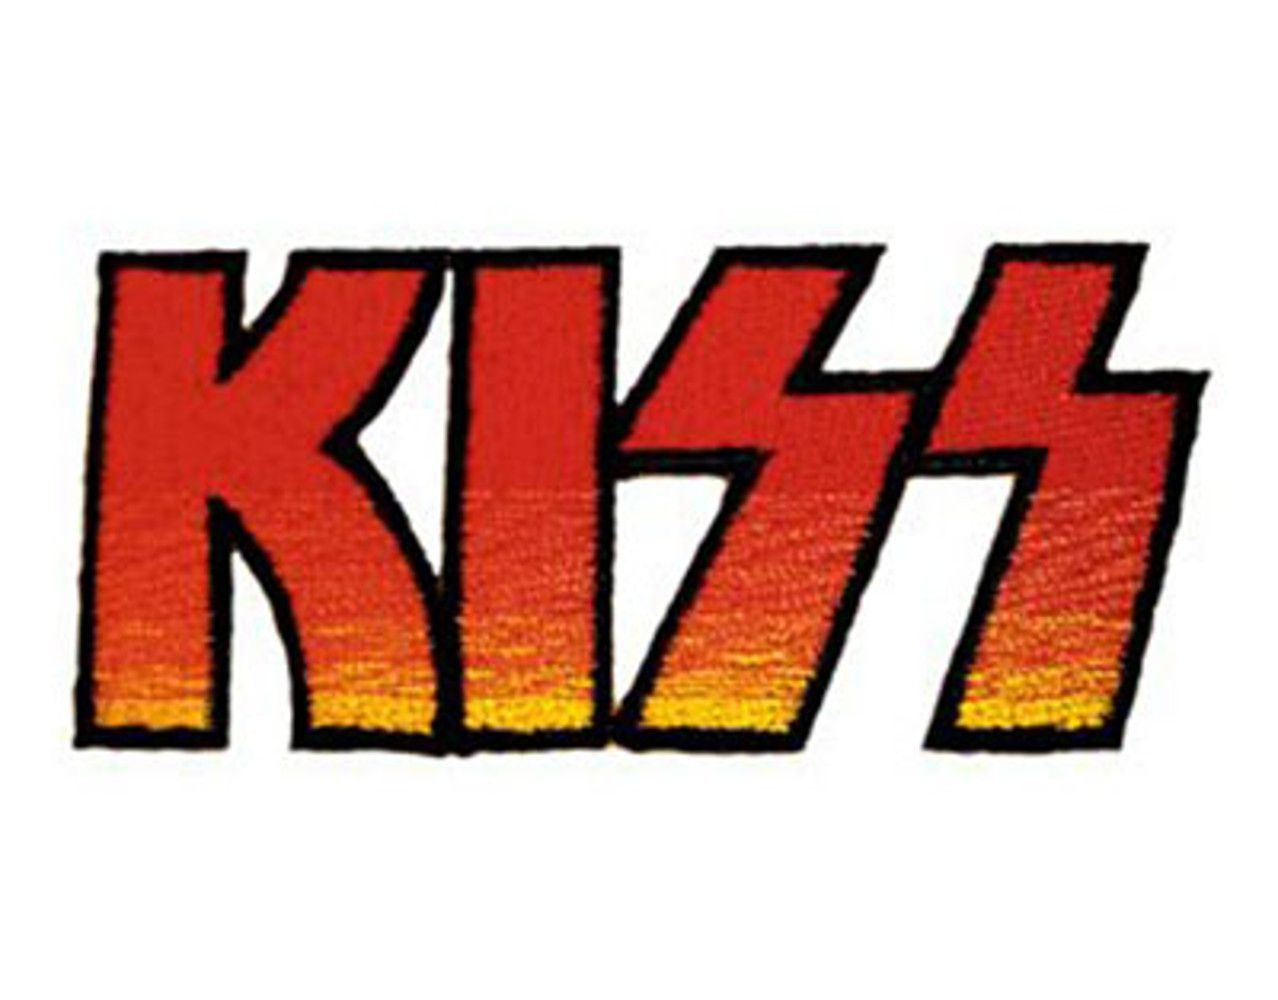 kiss logo shaped official patch licensed product free shipping rh pinterest co uk hershey kiss logo font kiss logo font free